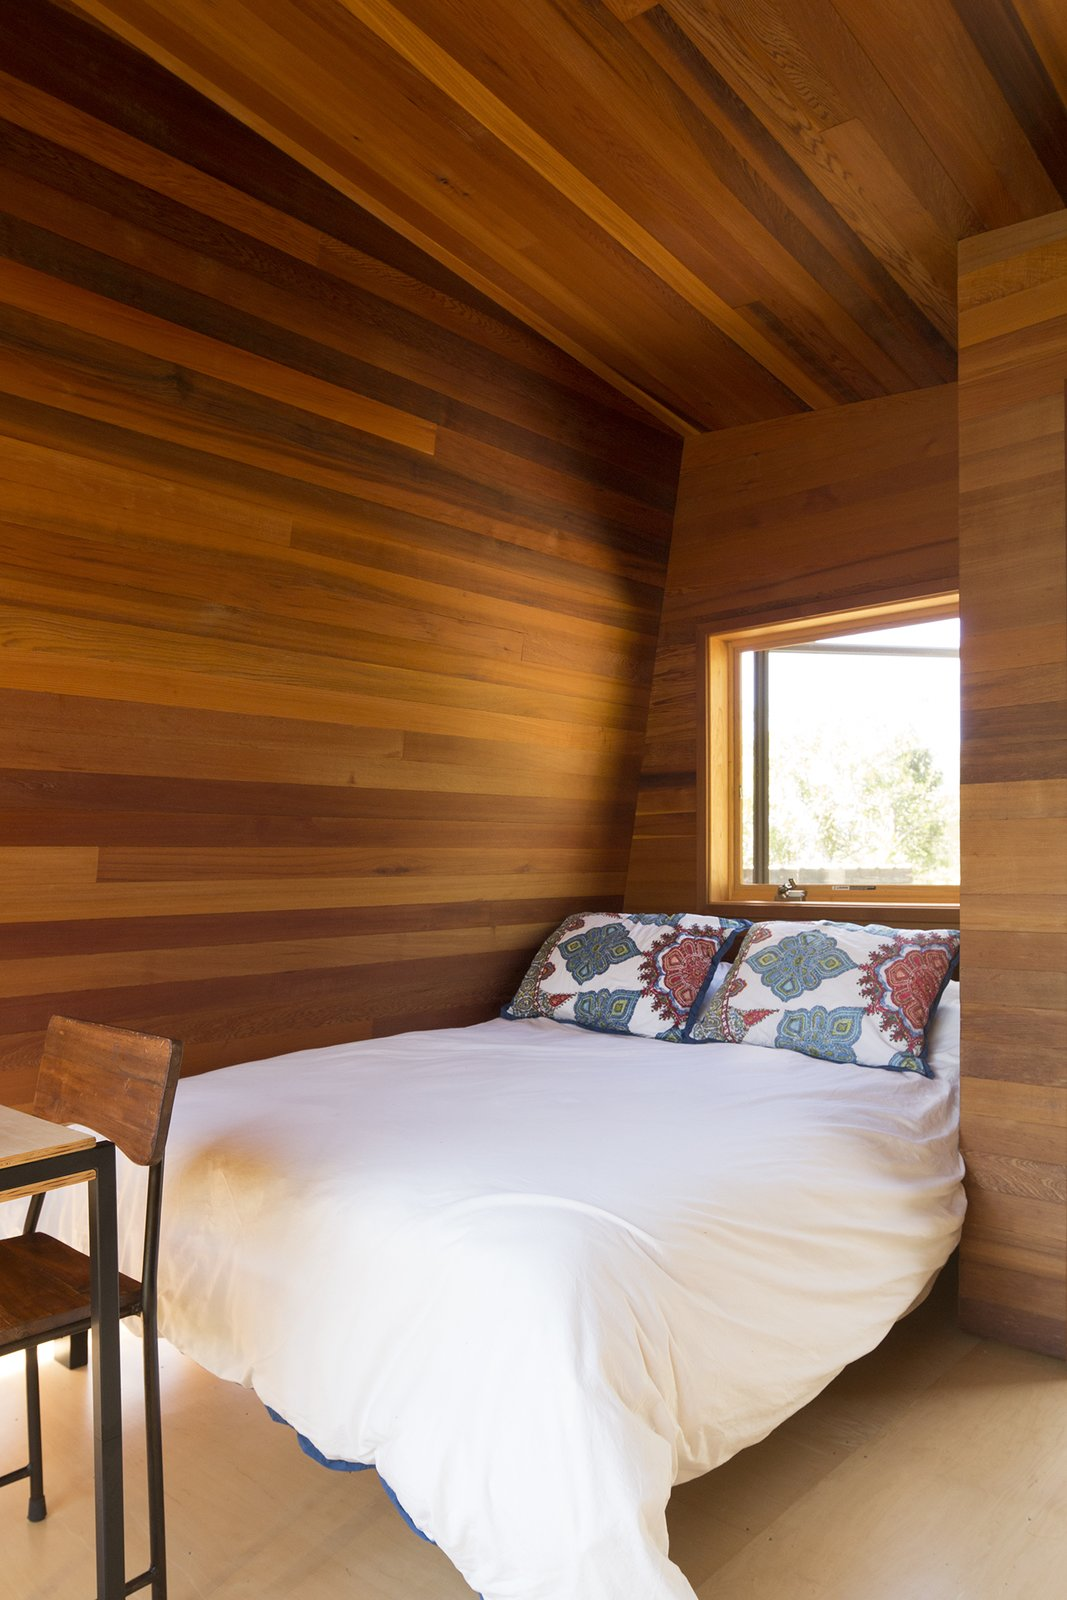 """Bedroom, Bed, and Chair """"The goal of the design was to amplify the site's natural phenomena, so that the luxury comes from the surroundings."""" Erin Moore, designer  Maui, Hawaii Dwell Magazine : September / October 2017  Best Photos from Two Tiny Pavilions Respectfully Perch Atop a Lava Flow on Maui"""